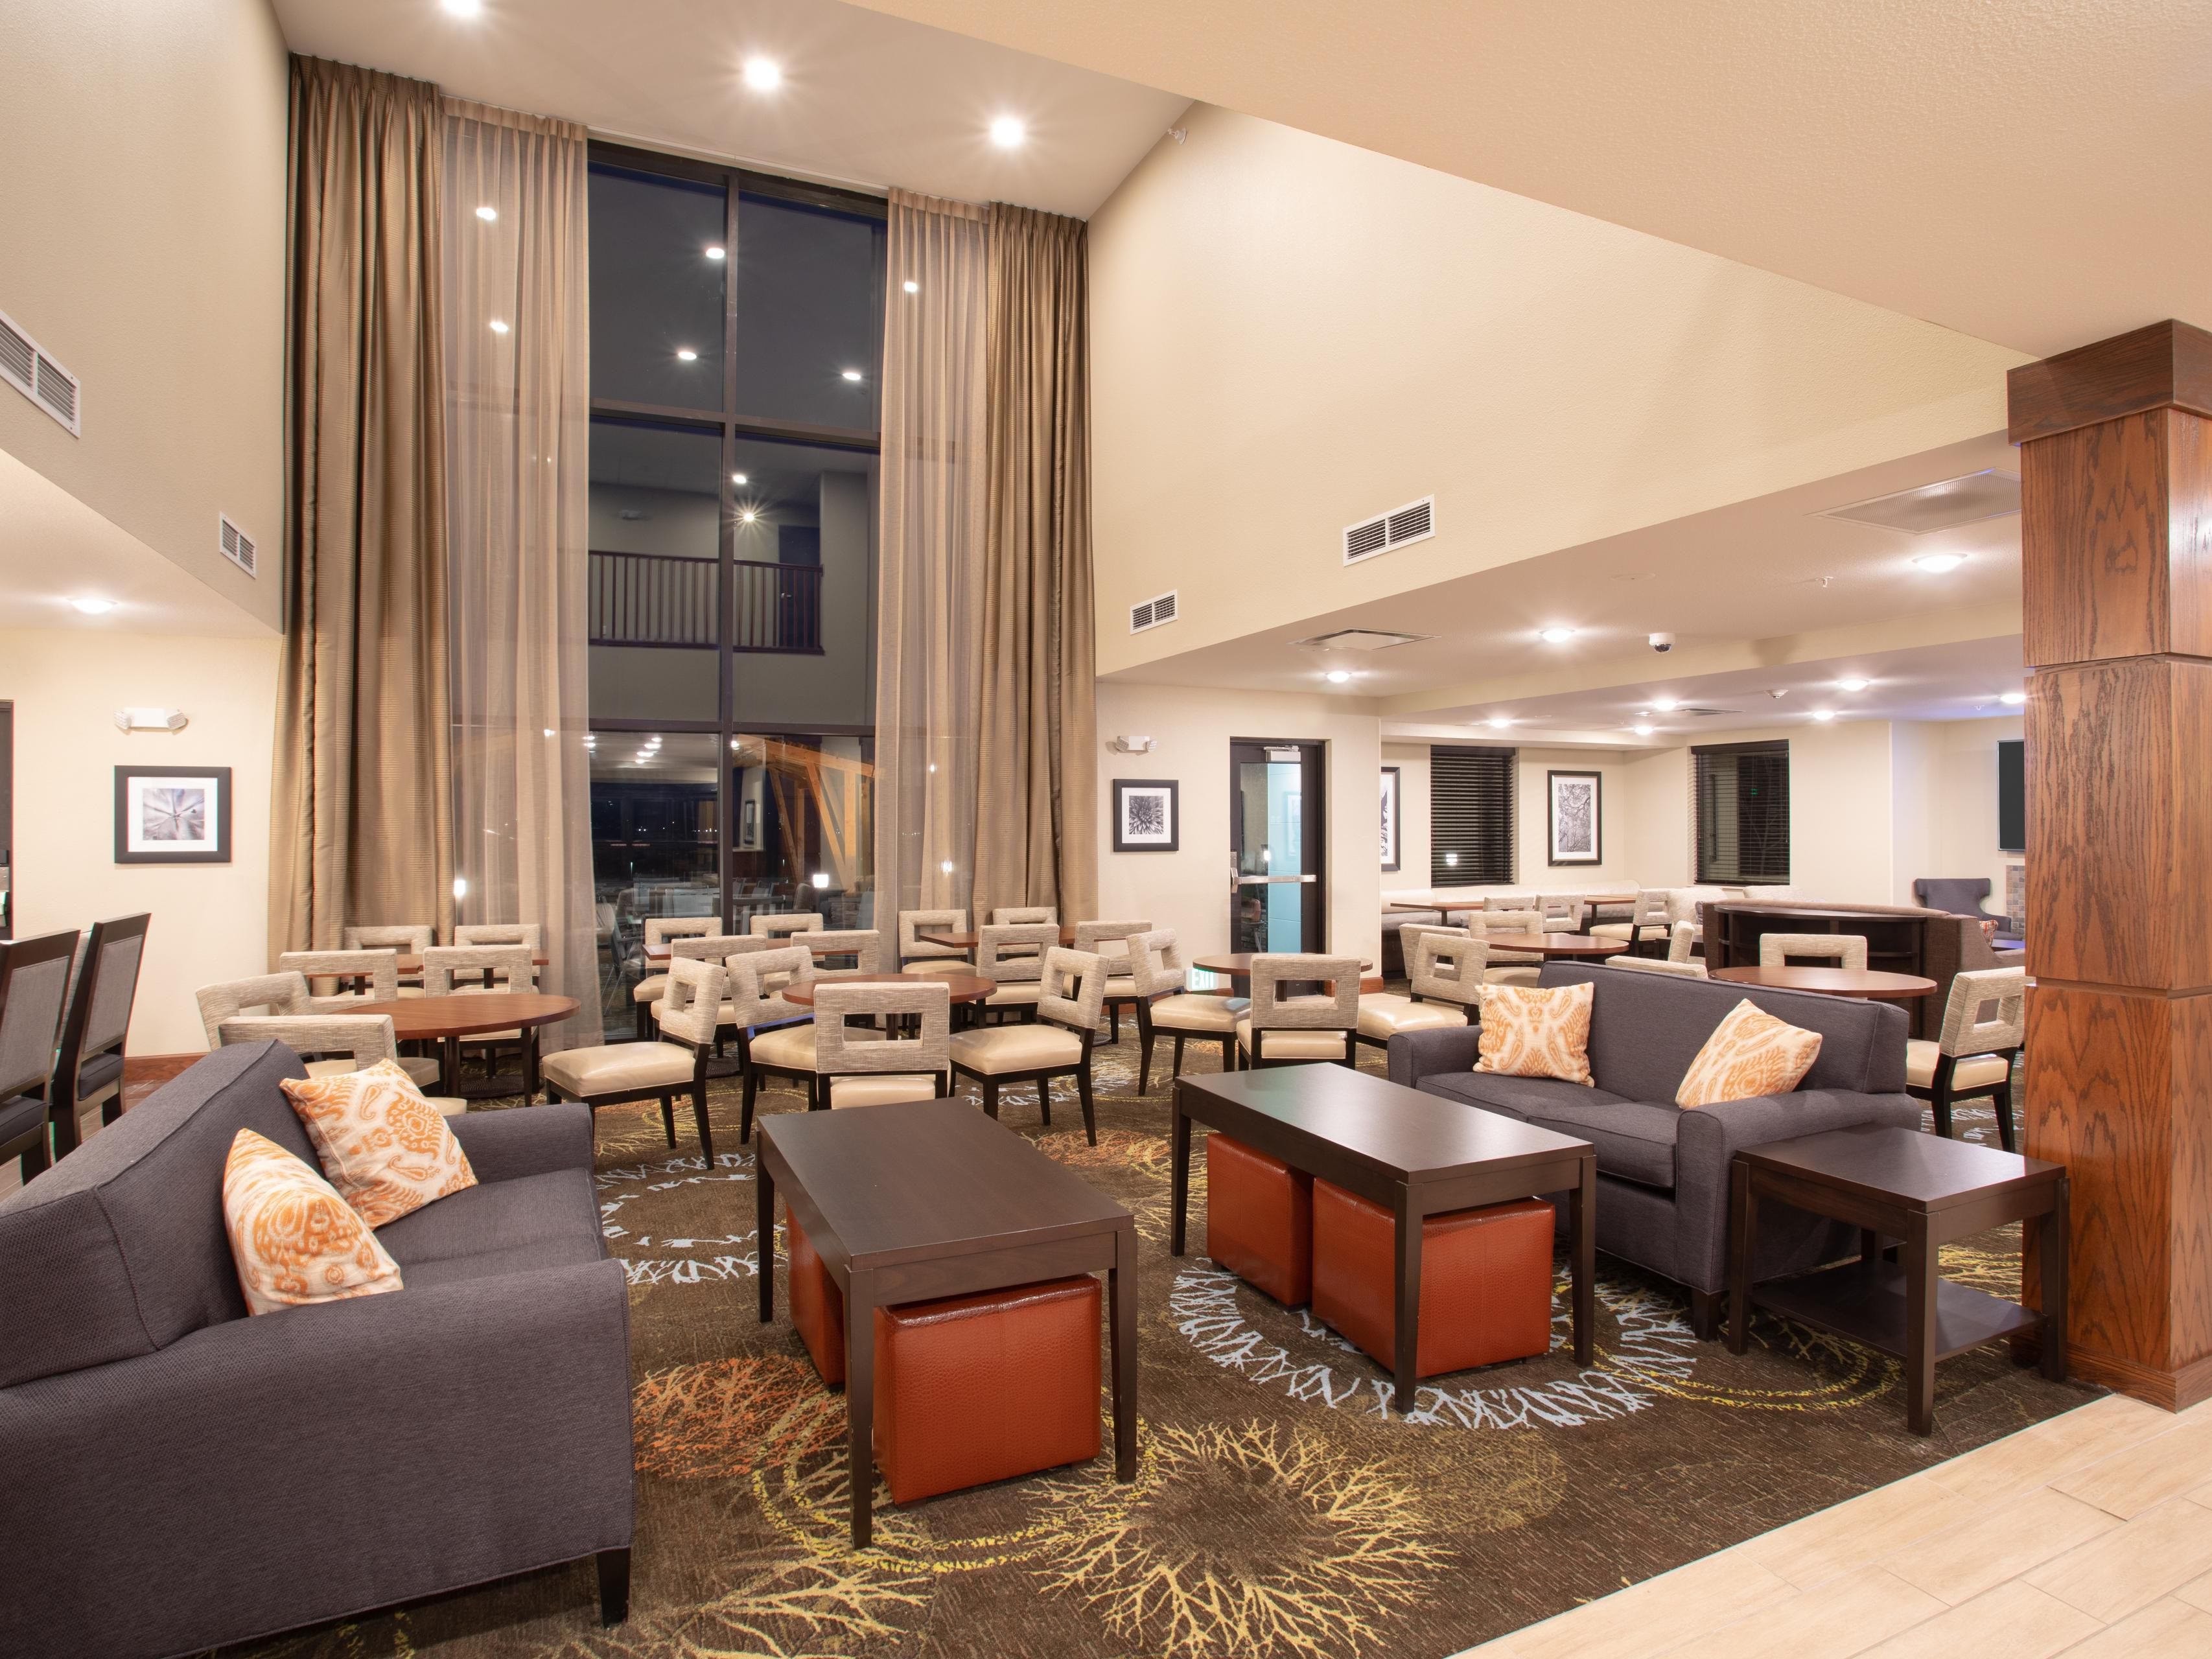 Fabulous Extended Stay Hotels Staybridge Suites Denver South Download Free Architecture Designs Viewormadebymaigaardcom